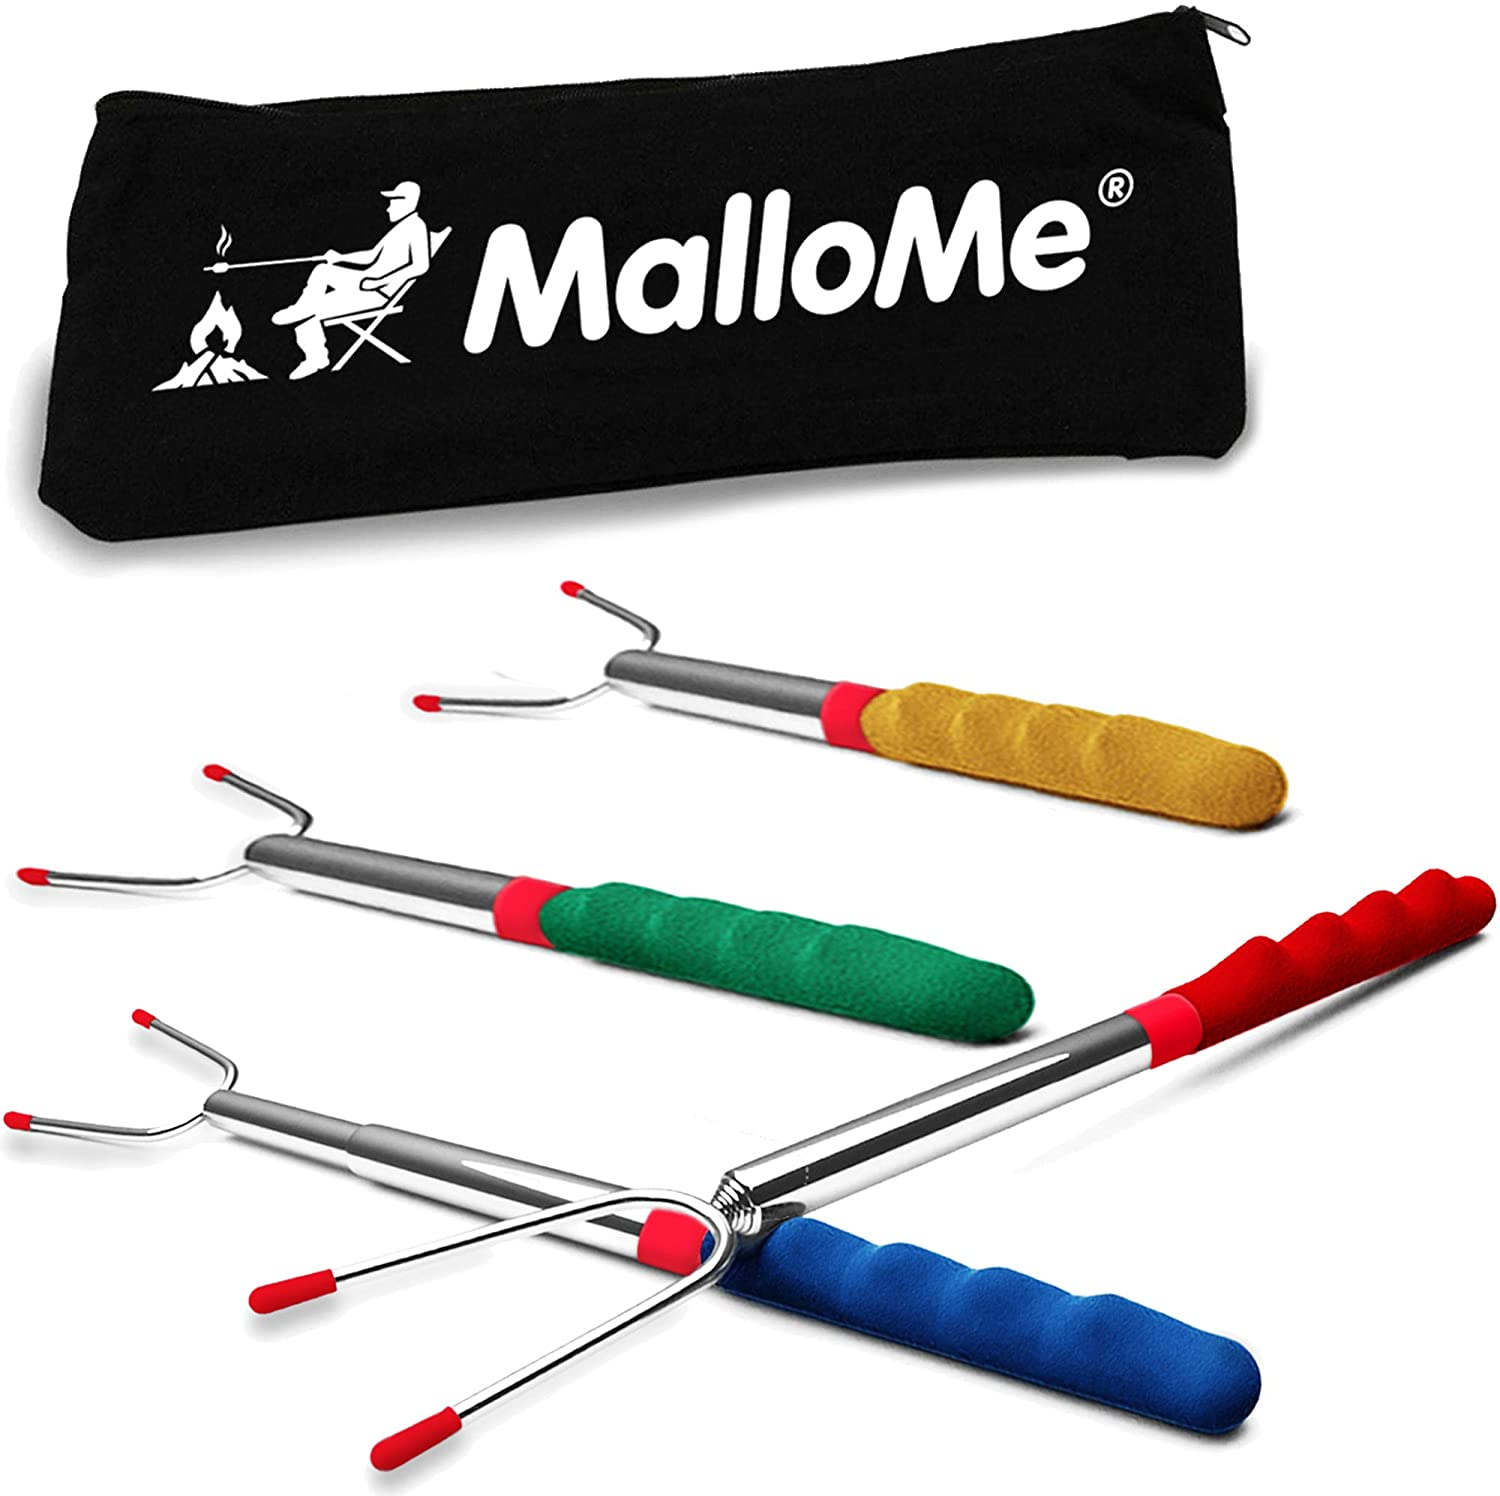 MalloMe Premium Marshmallow 45-inch Roasting Sticks Set of 4 Smores Skewers & Hot Dog Fork | Extending Patio Fire Pit Camping Cookware Campfire